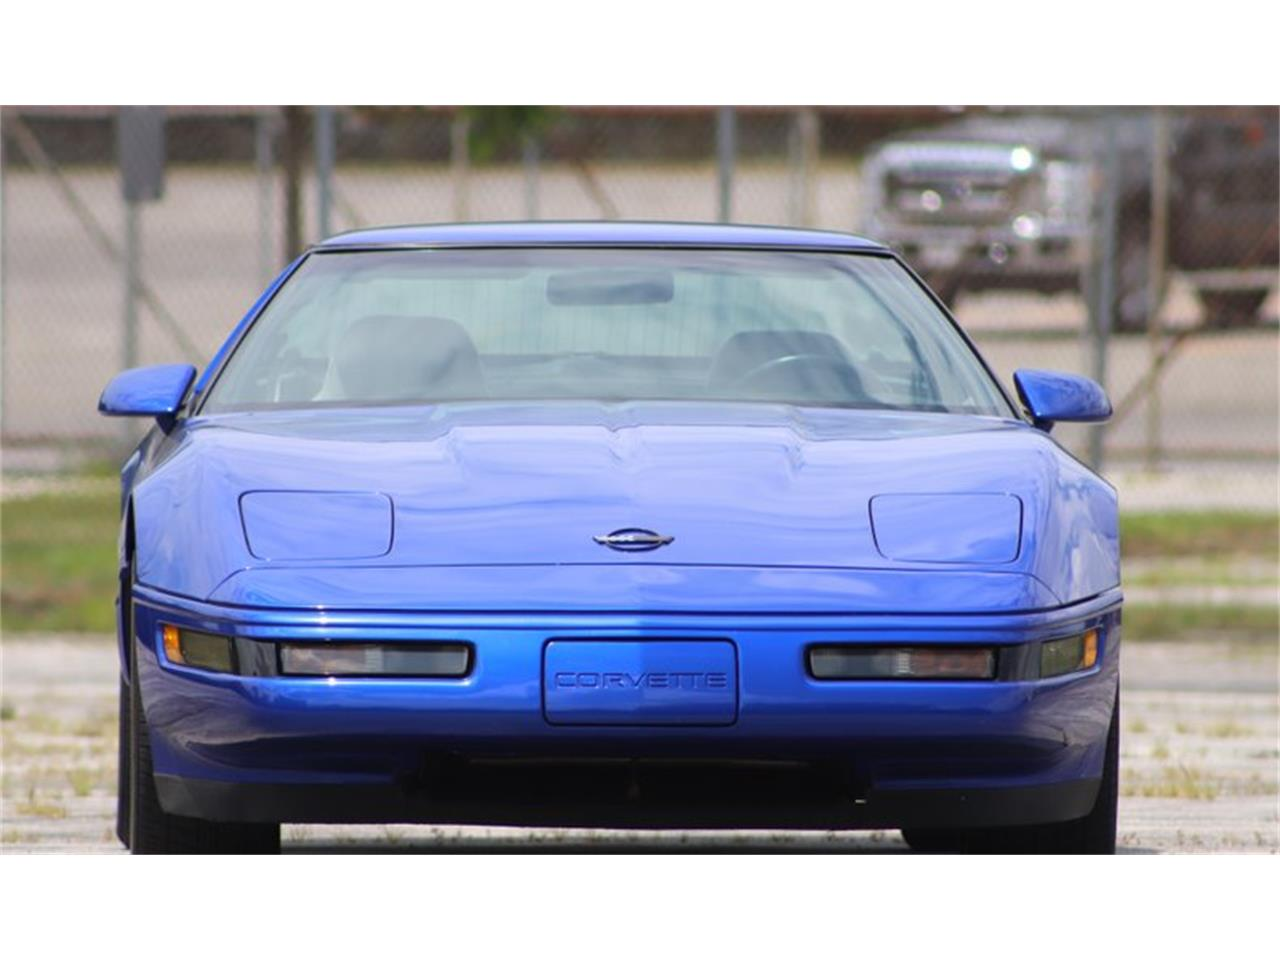 1995 Chevrolet Corvette for sale in Alsip, IL – photo 75